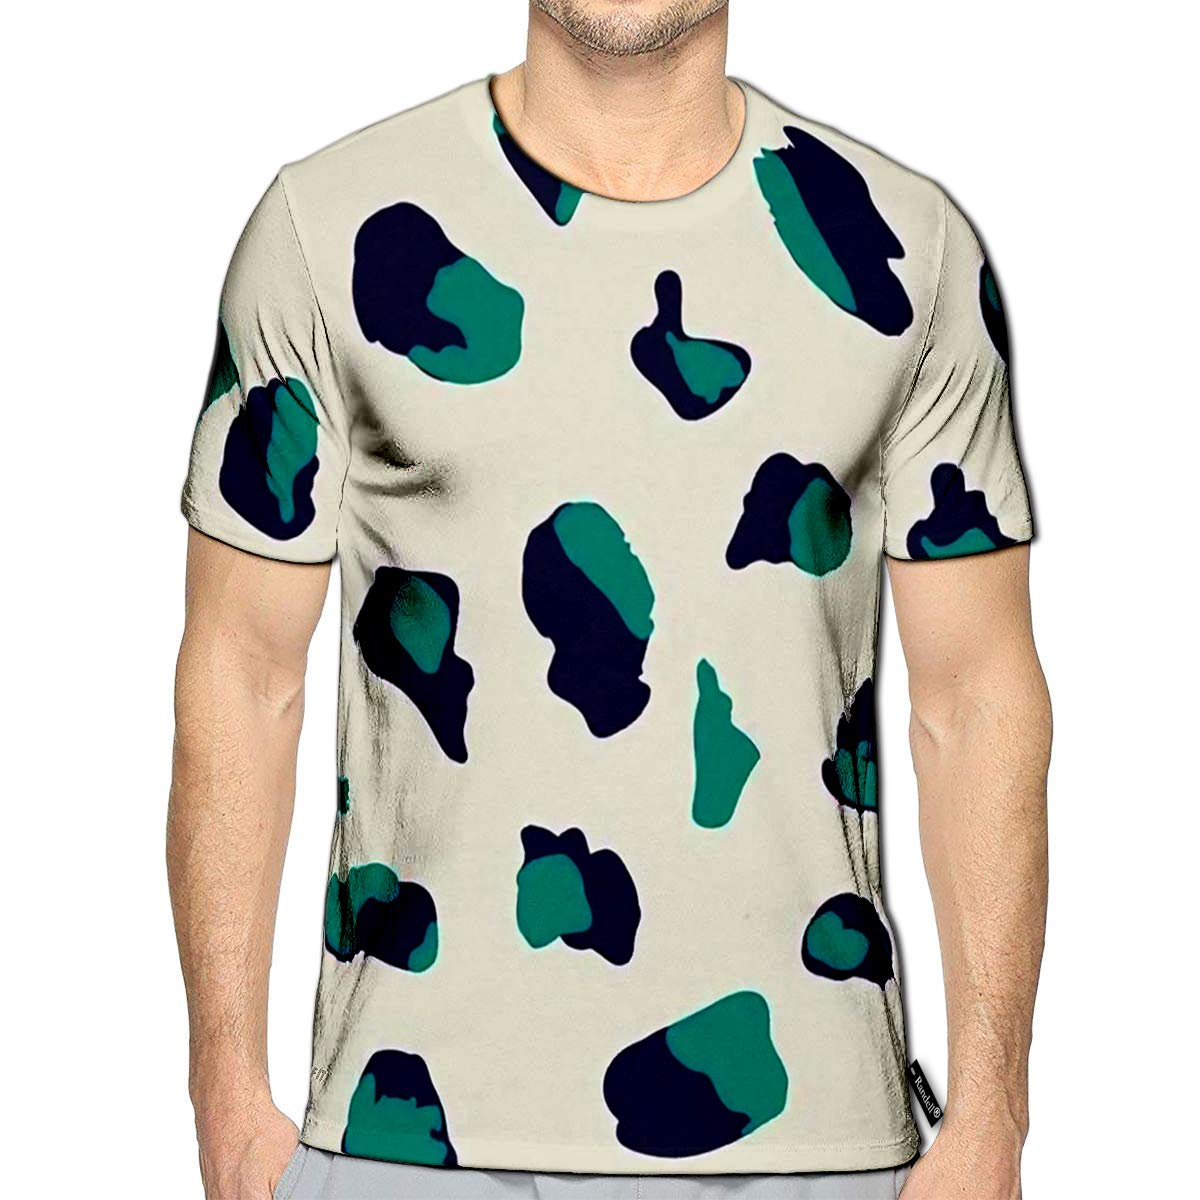 3D Printed T-Shirts Design with Abstract Animal Print Style Shapes Creative Repe